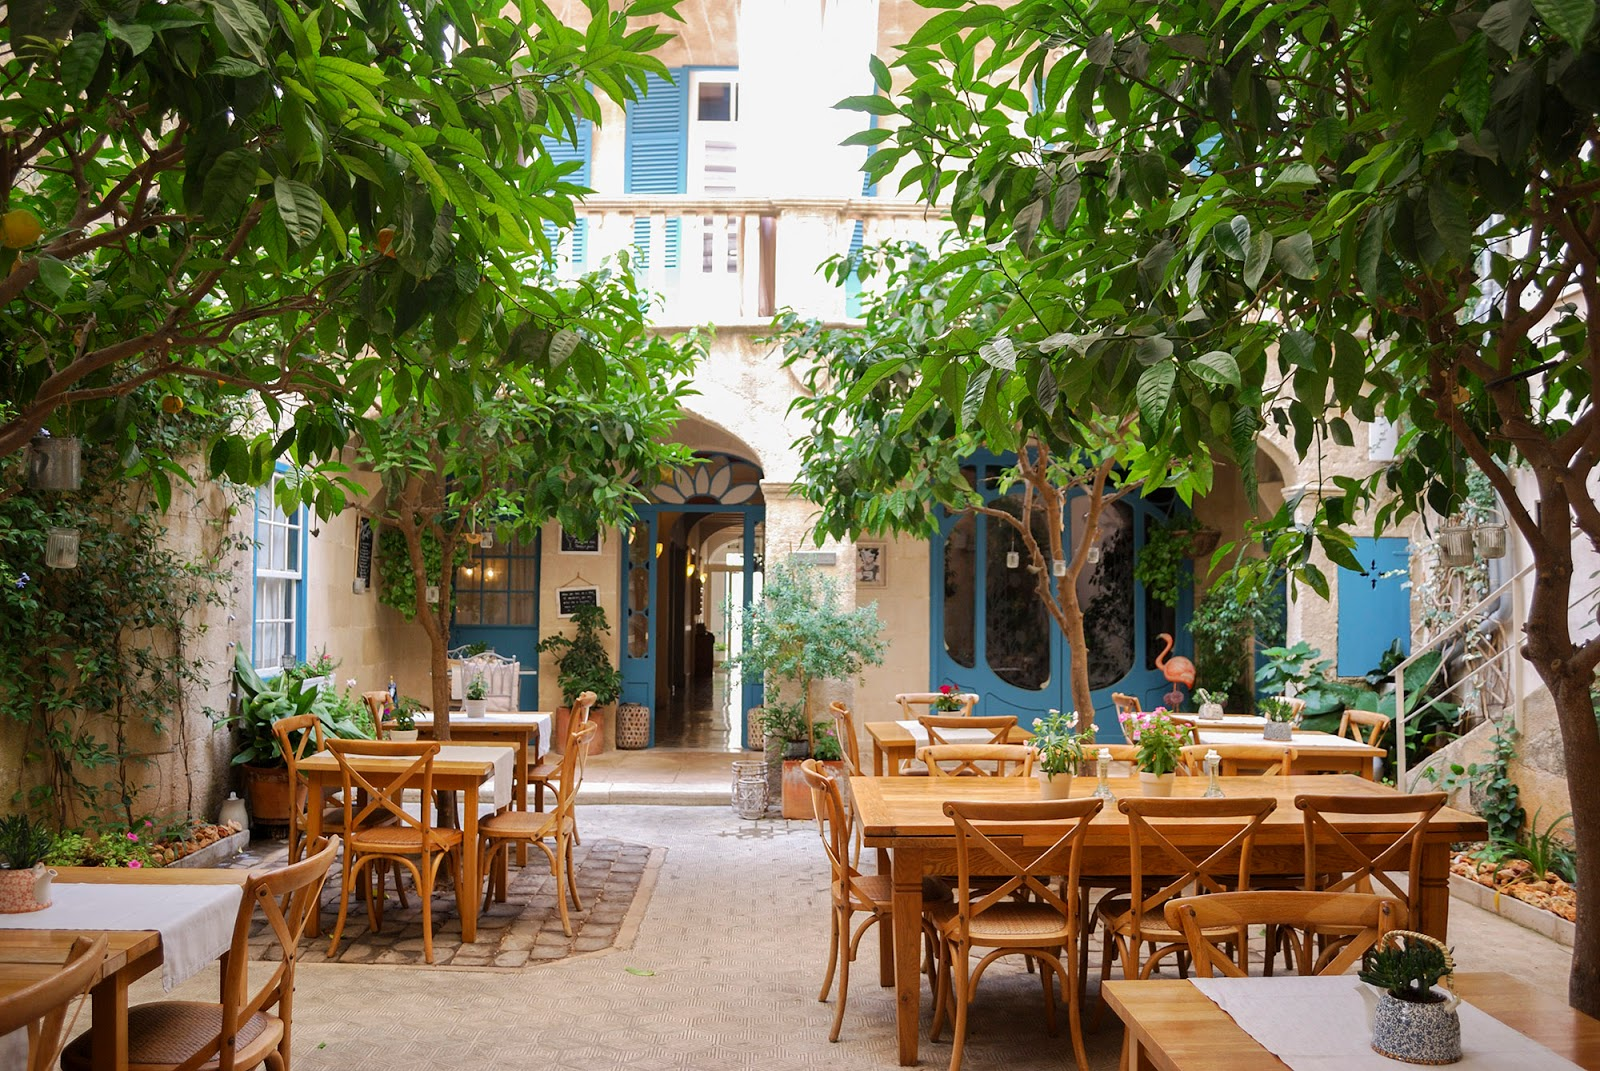 Jardi de ses Bruixes Mahon Menorca Spain where to eat stay boutique hotel